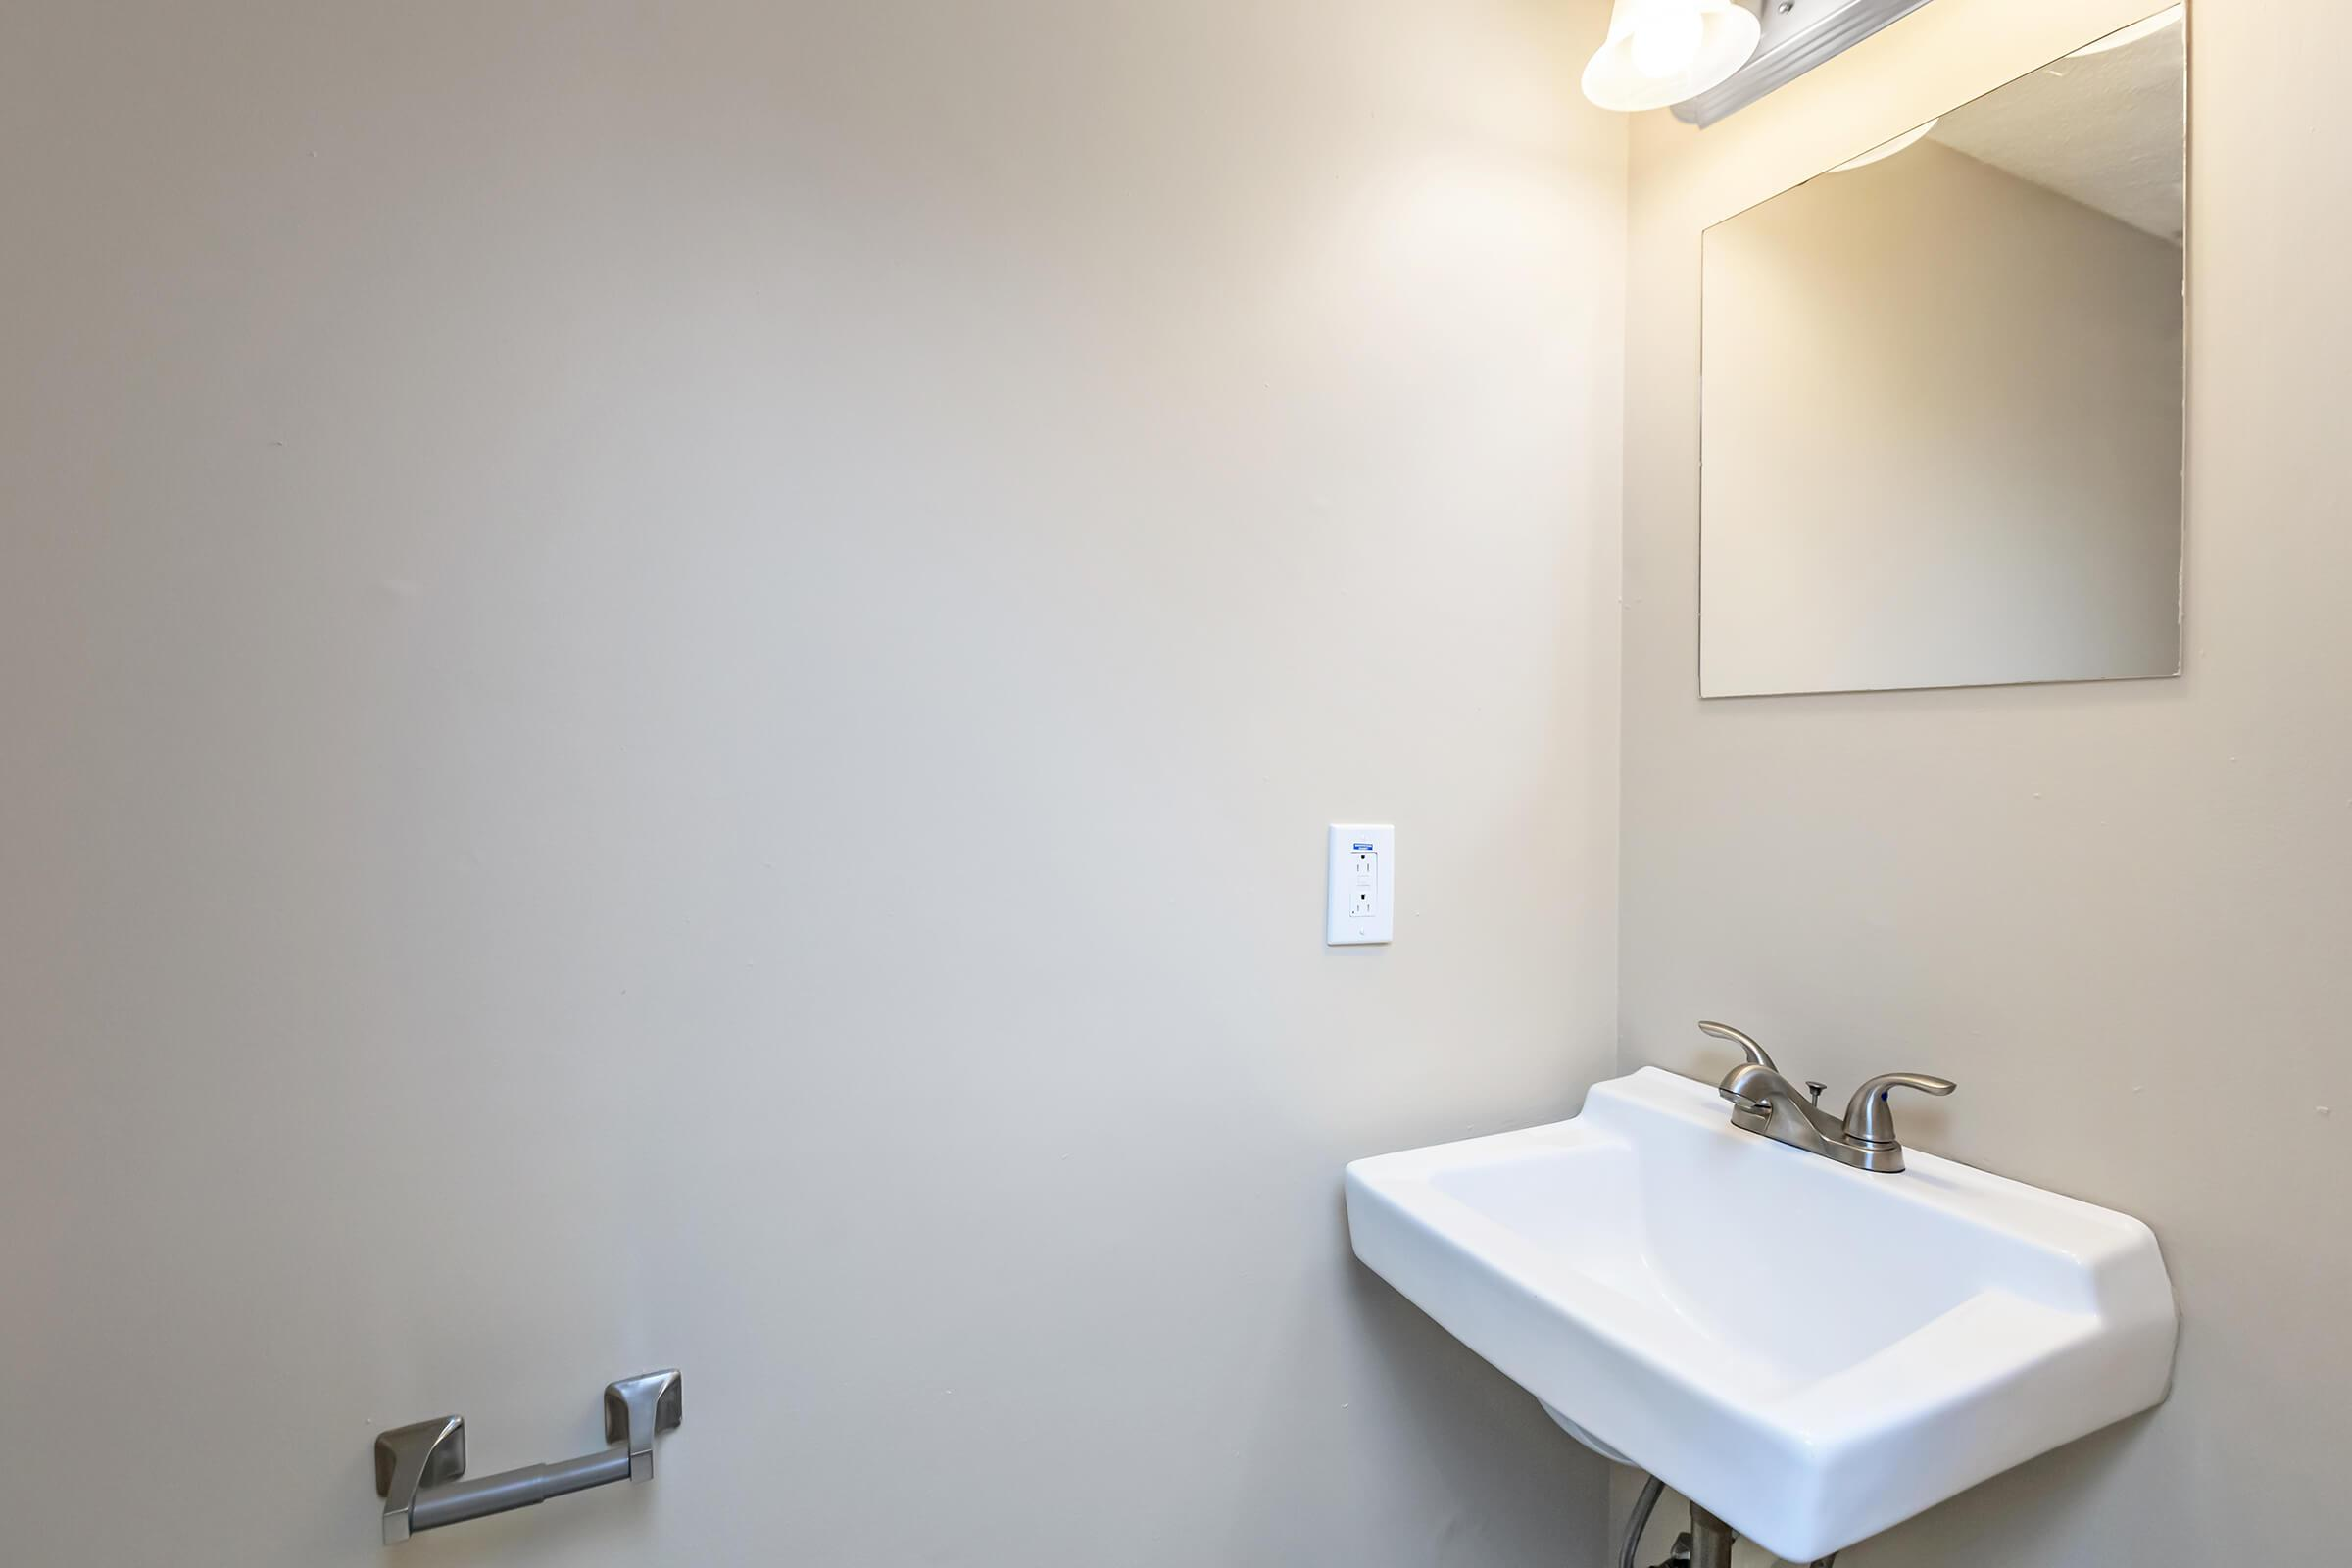 Chic bathrooms at The Residences at 1671 Campbell in Clarksville, TN